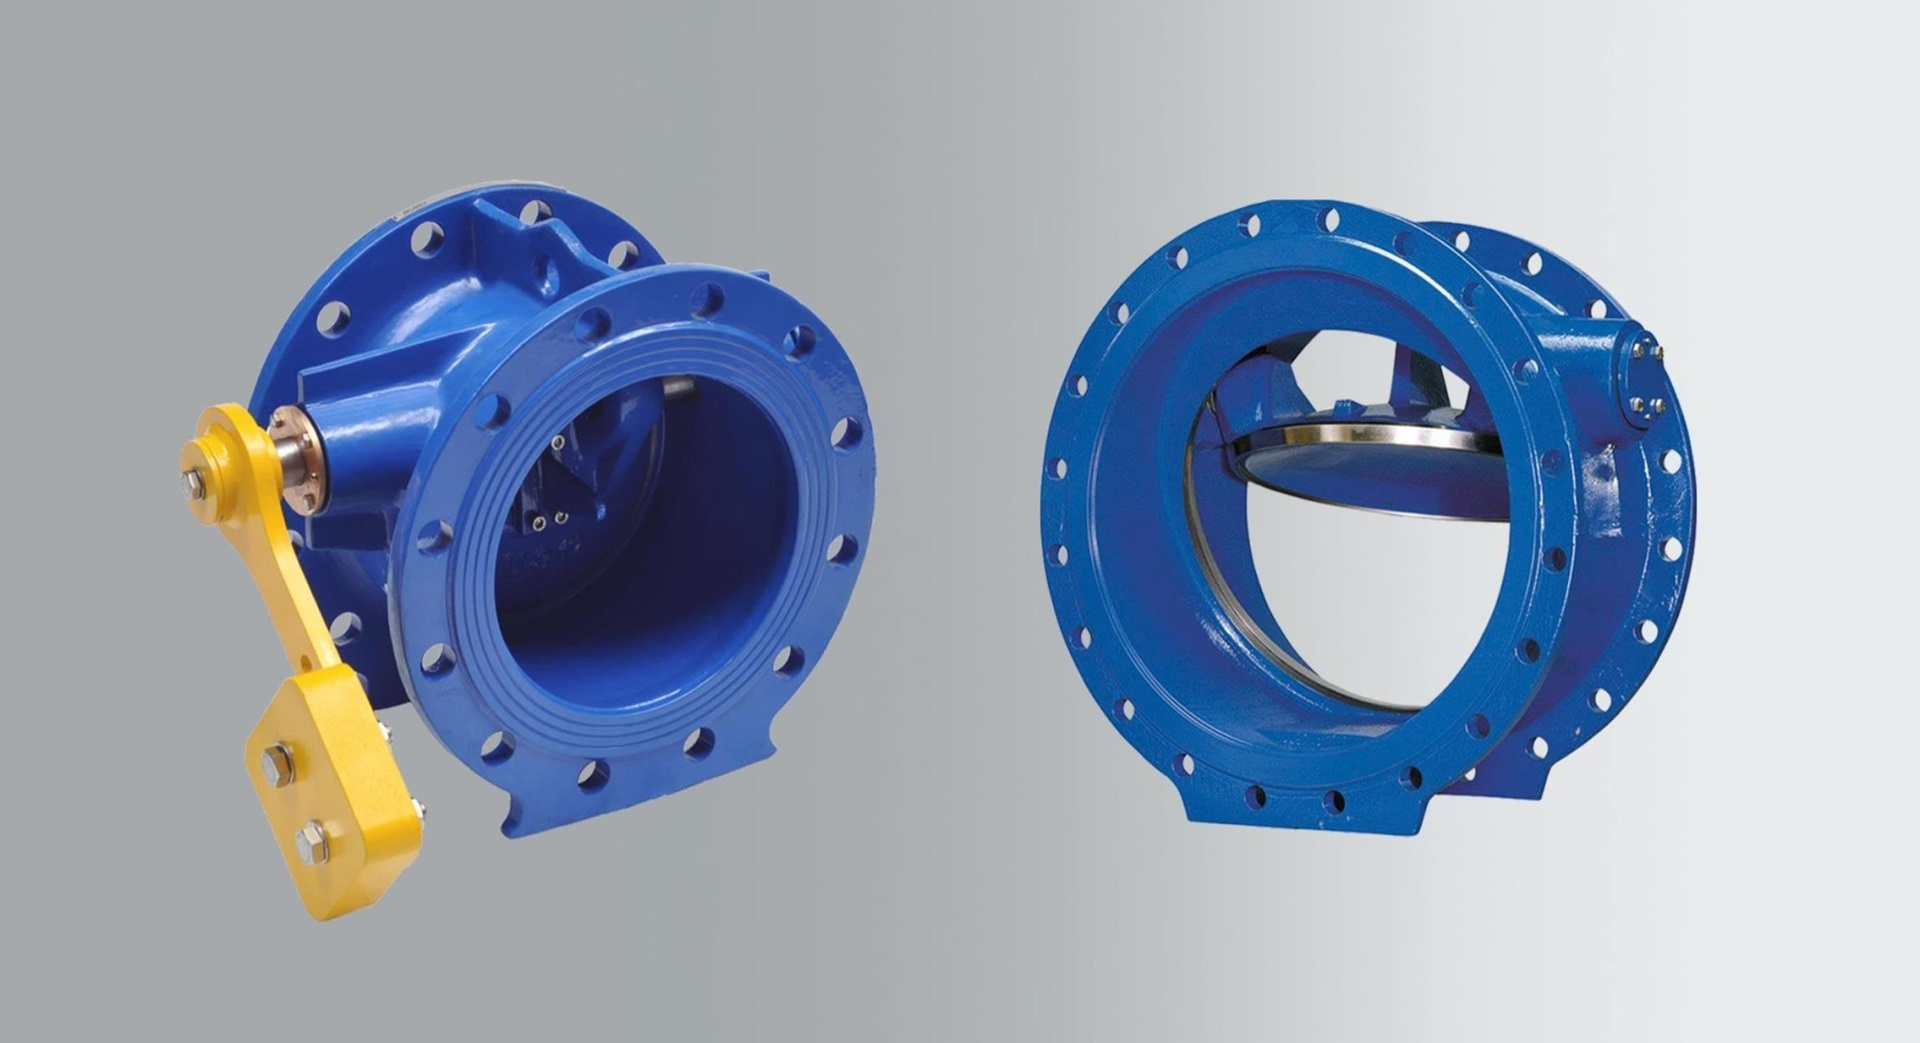 Tilting disc check valves with resilient seat and tilting disc check valves with slanted metal seat